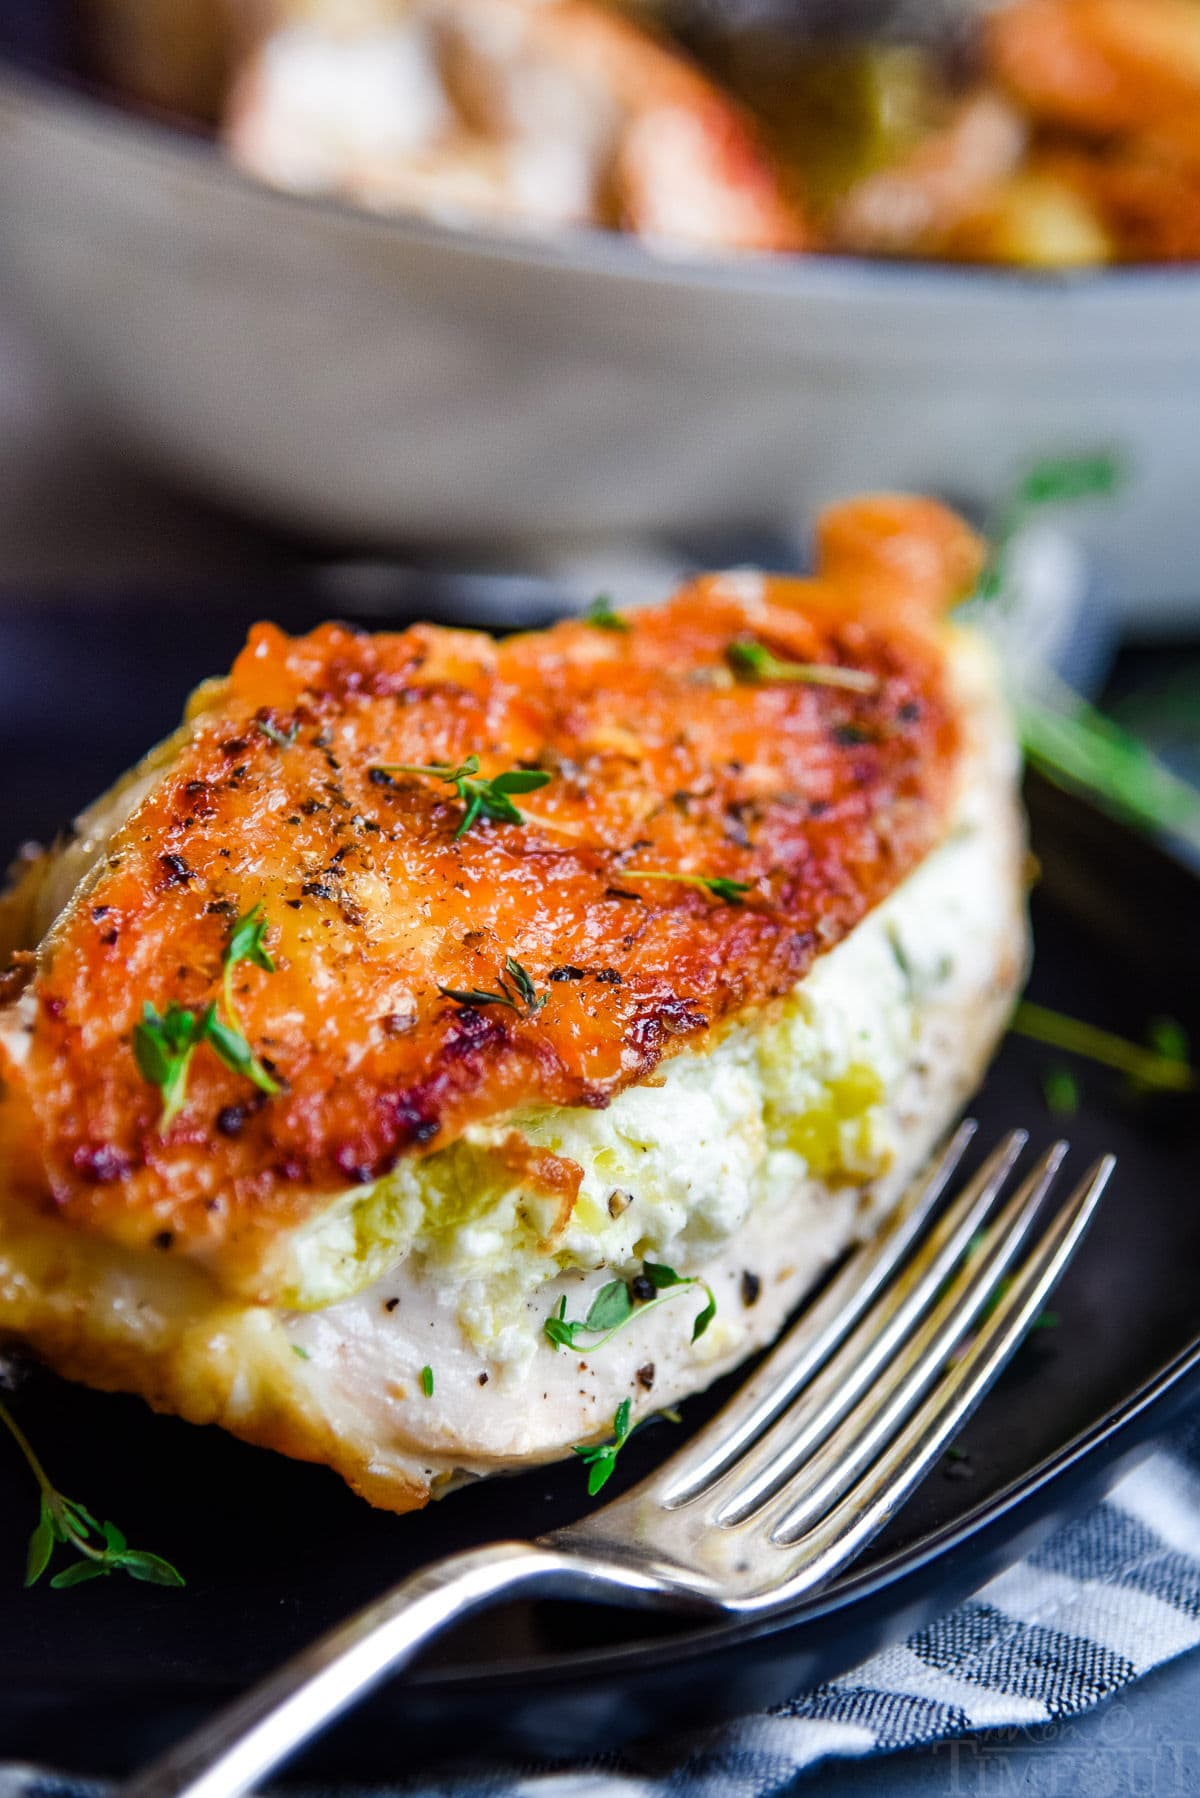 stuffed chicken with crispy skin on black plate with fork